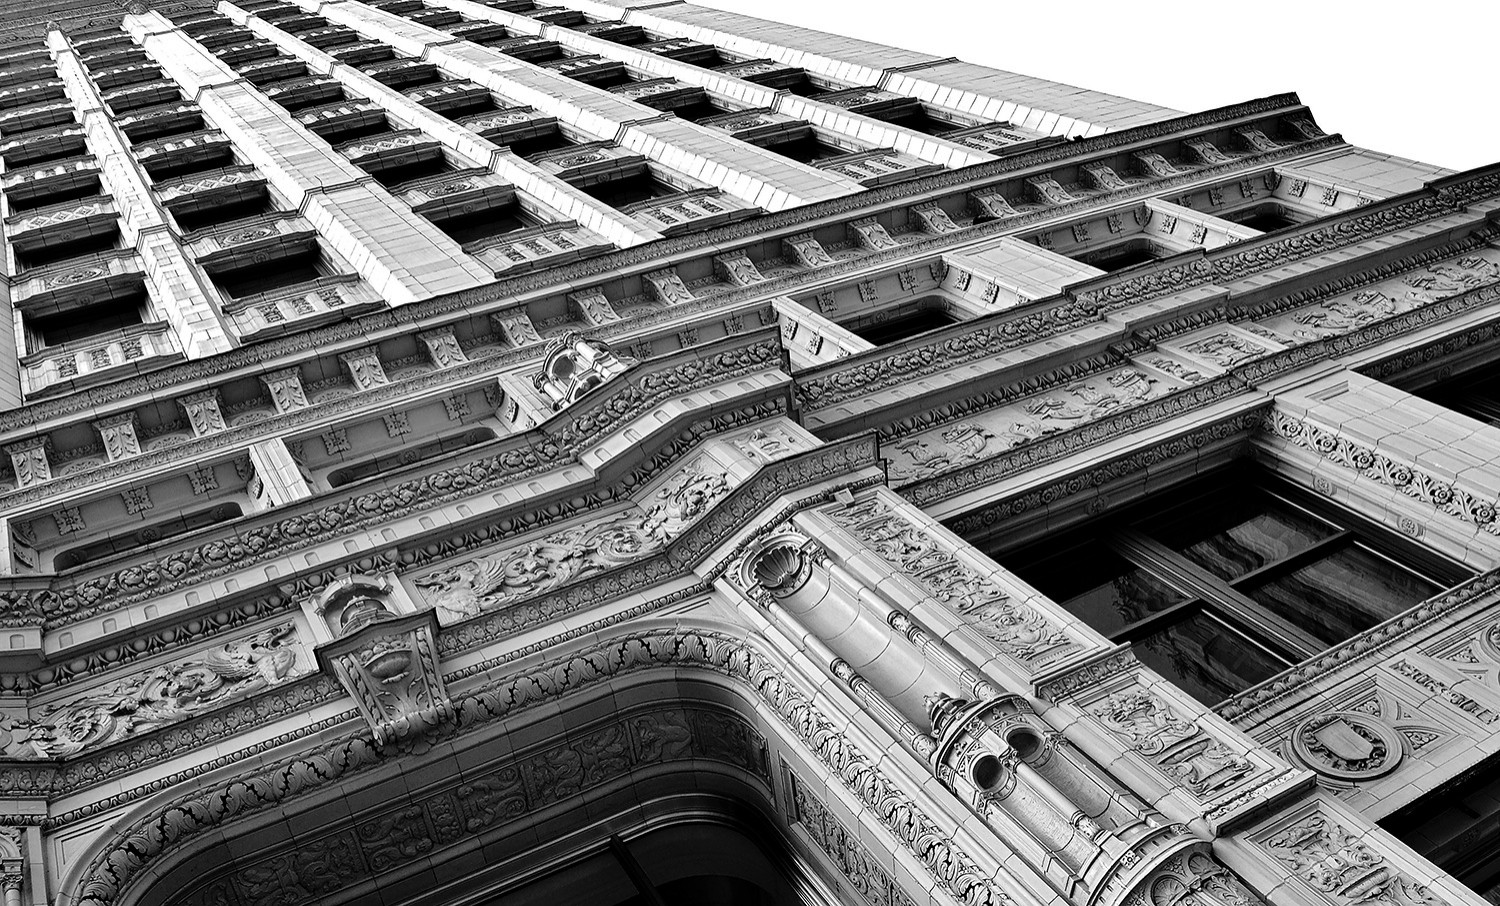 CHICAGO ICON - WRIGLEY FIELD BUILDING